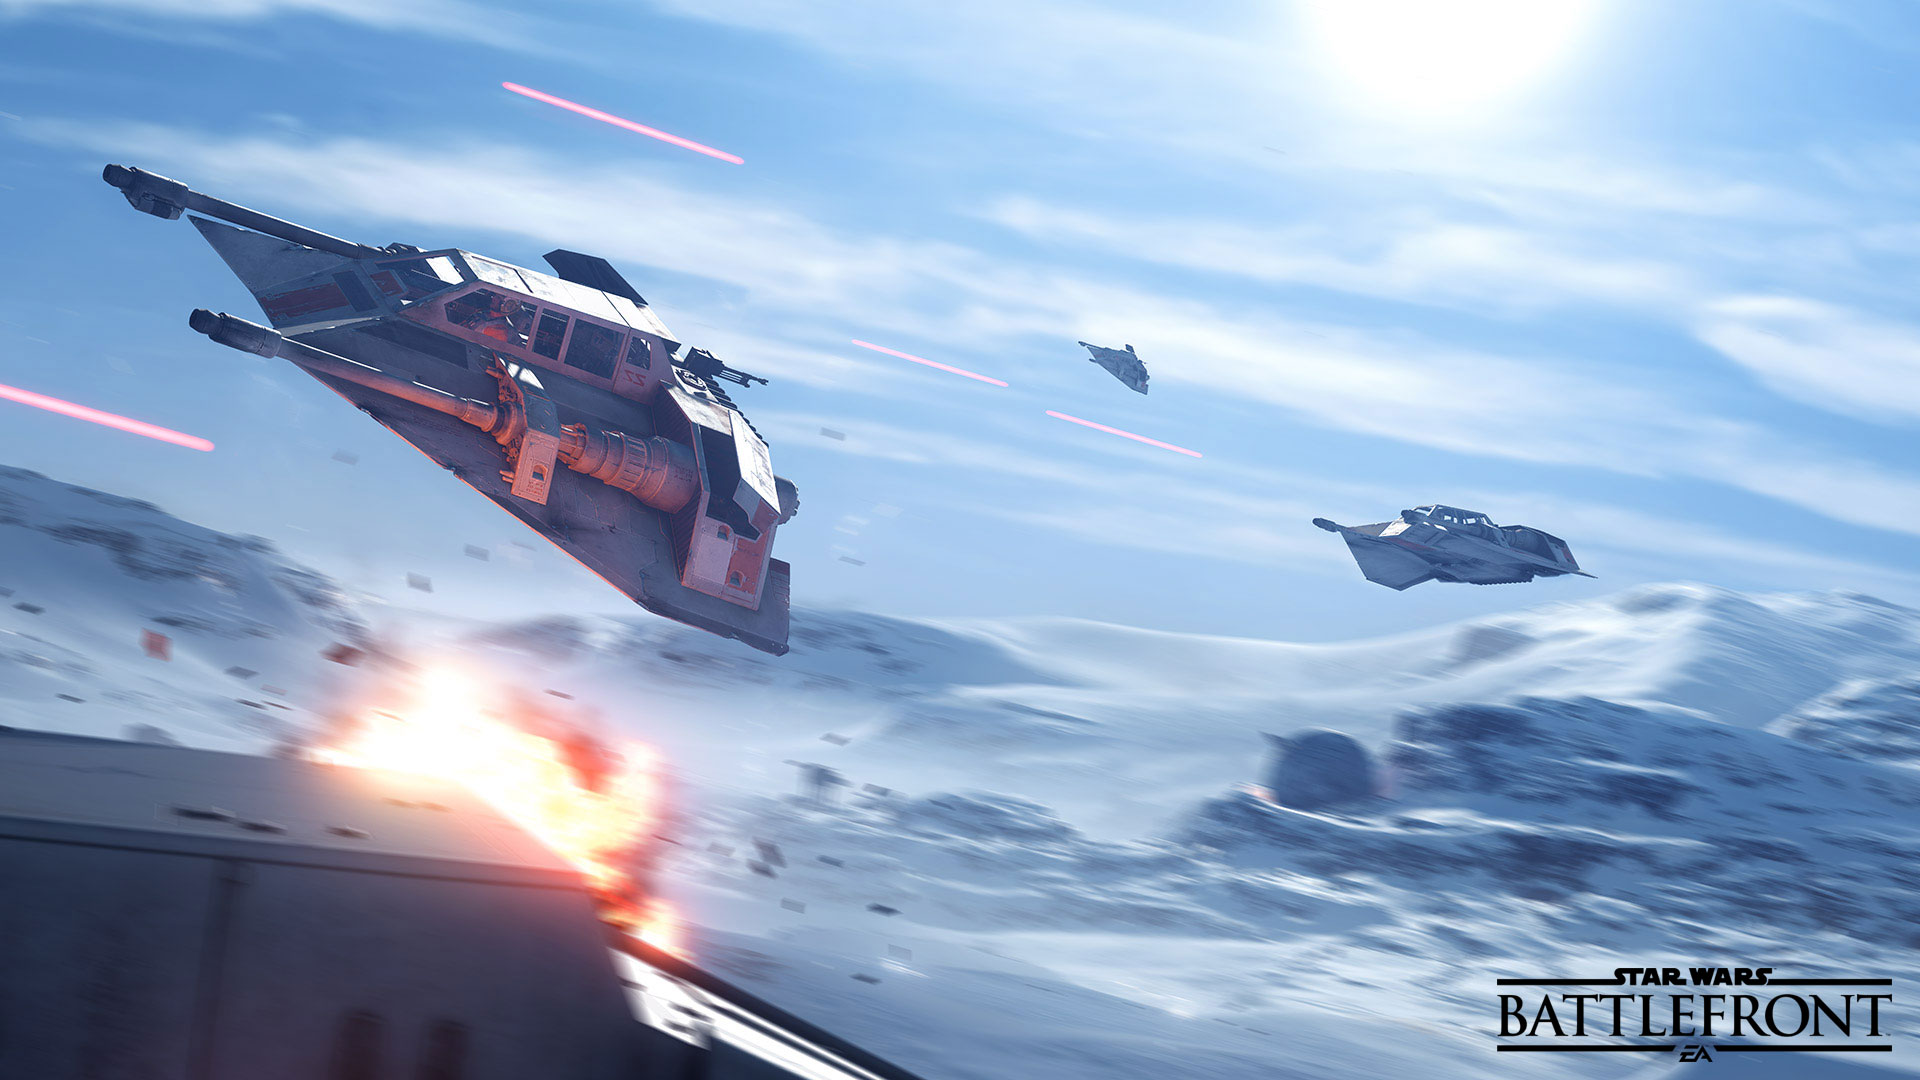 Star Wars Battlefront hype!